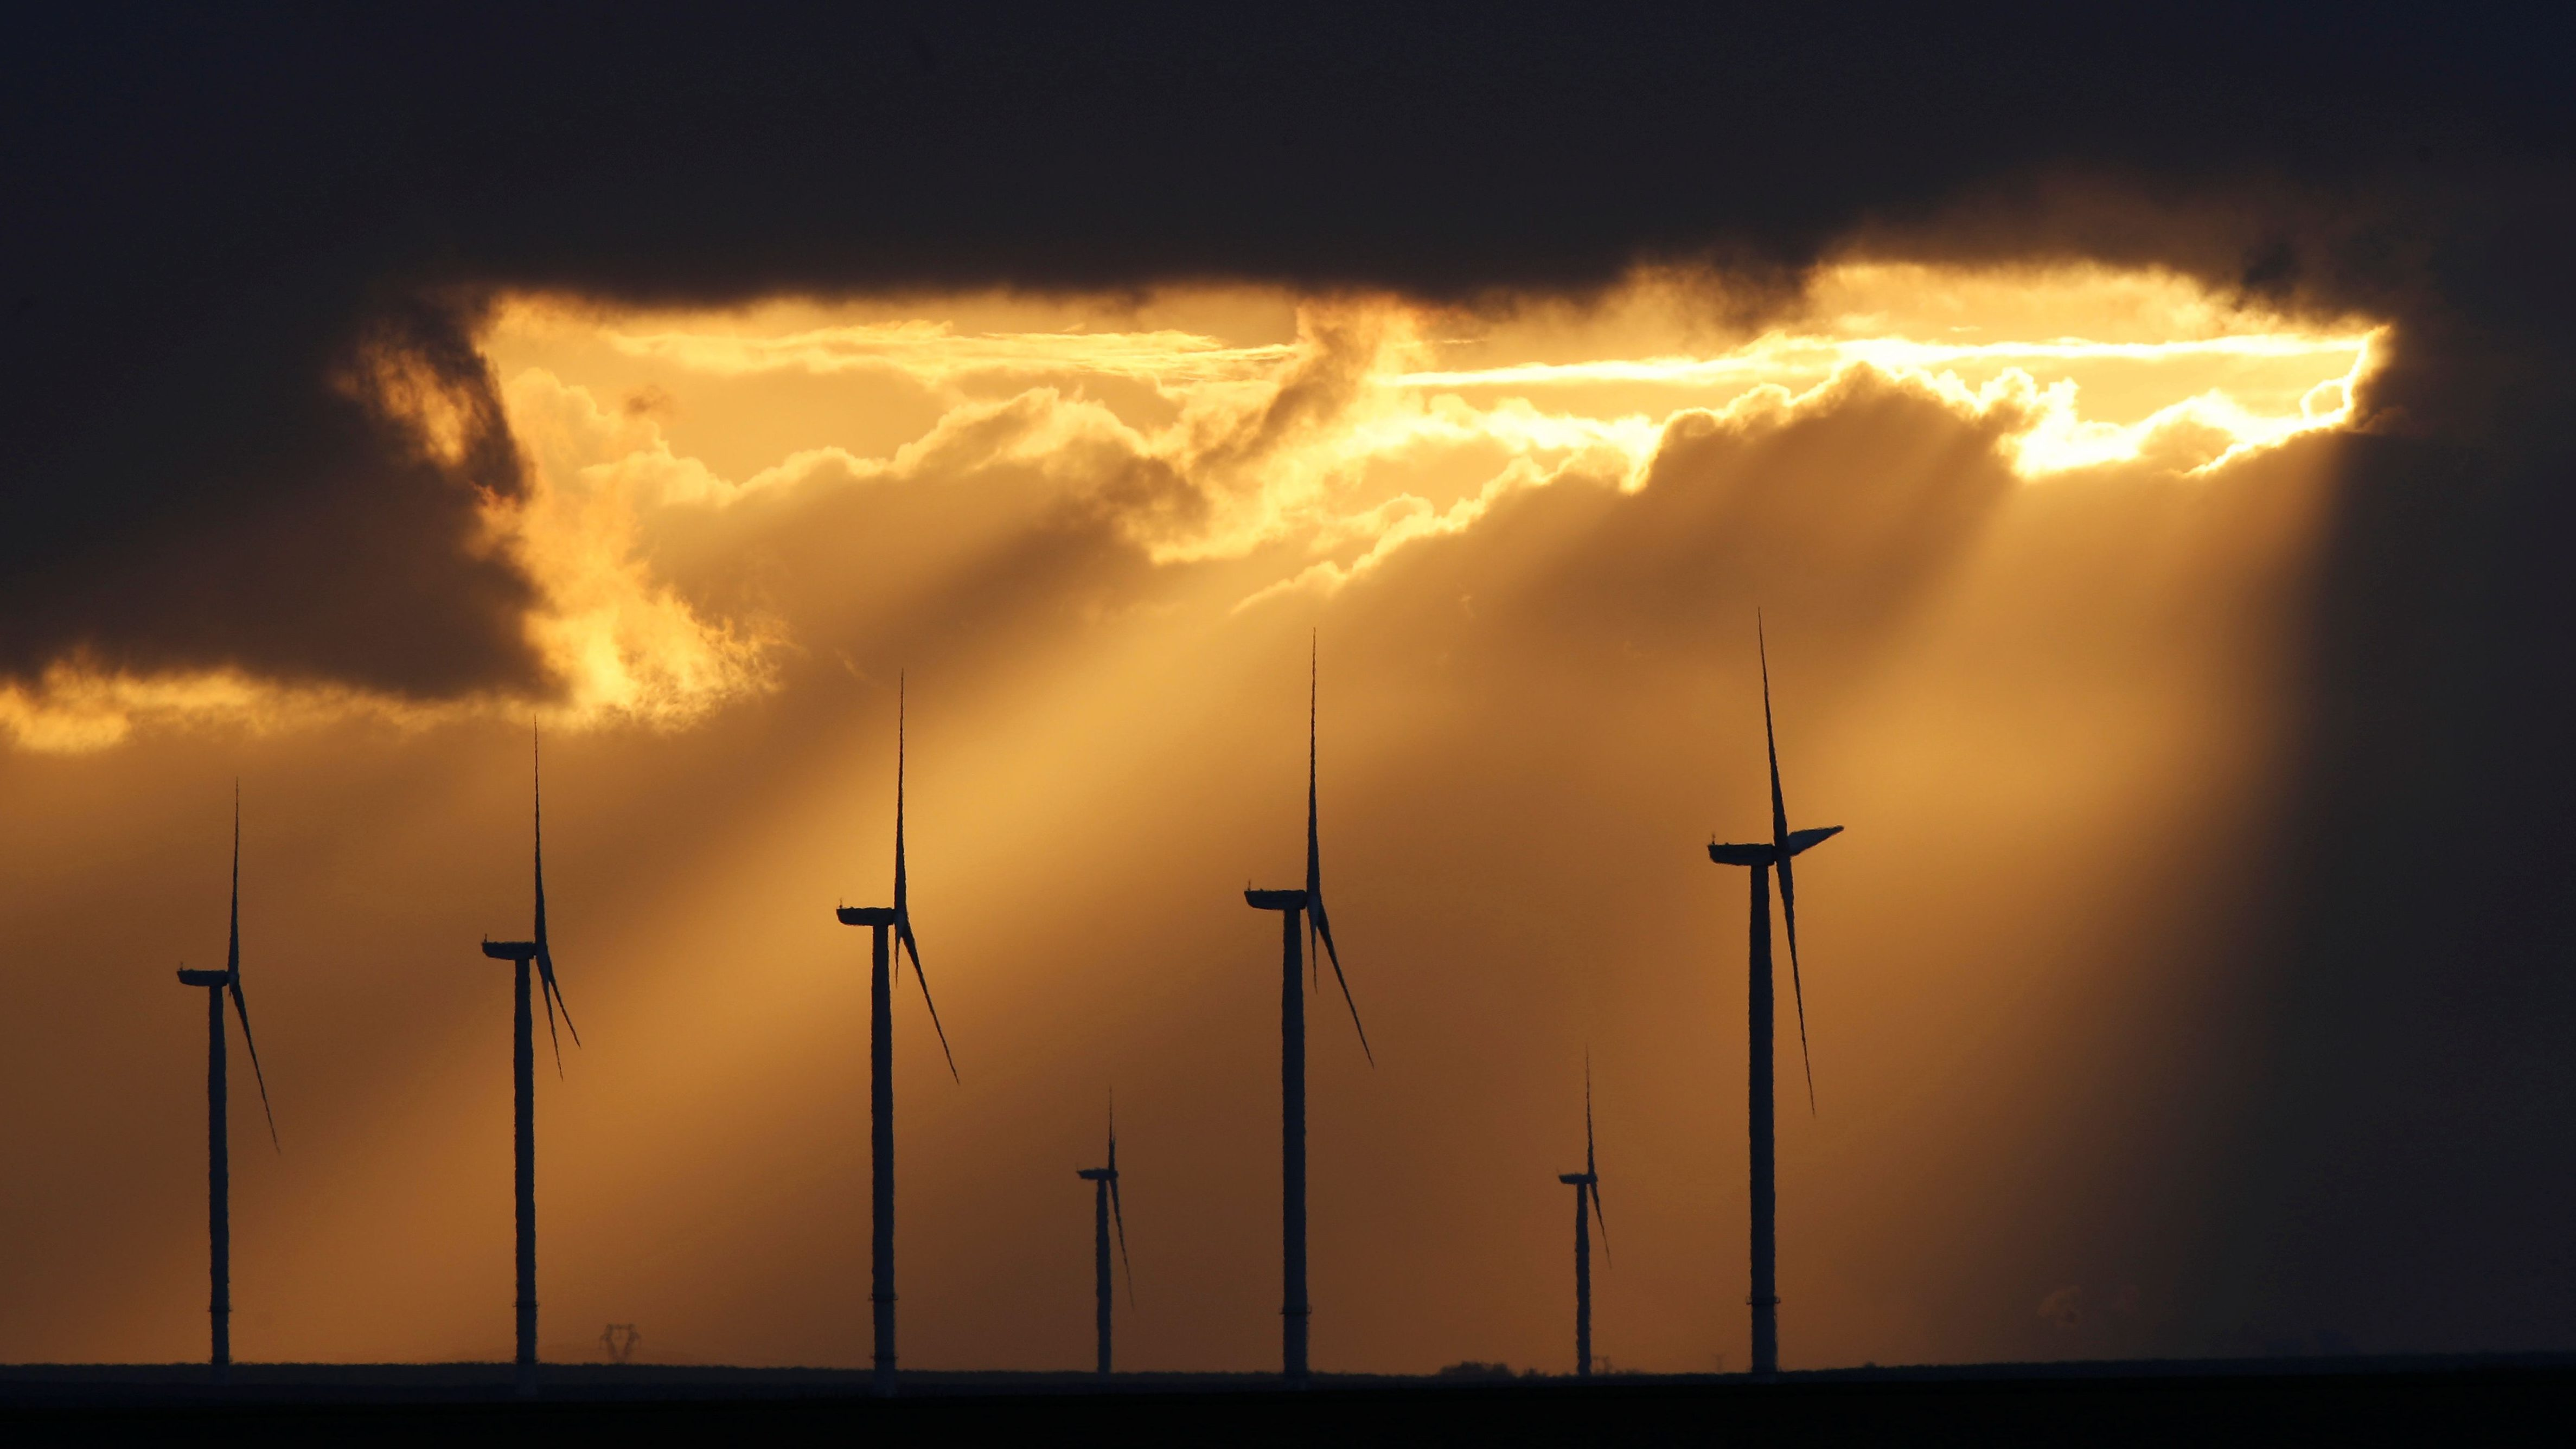 Power-generating windmill turbines are seen during sunset at a wind park near Reims, France, November 13, 2017. REUTERS/Christian Hartmann - RC1FEFD9C1F0